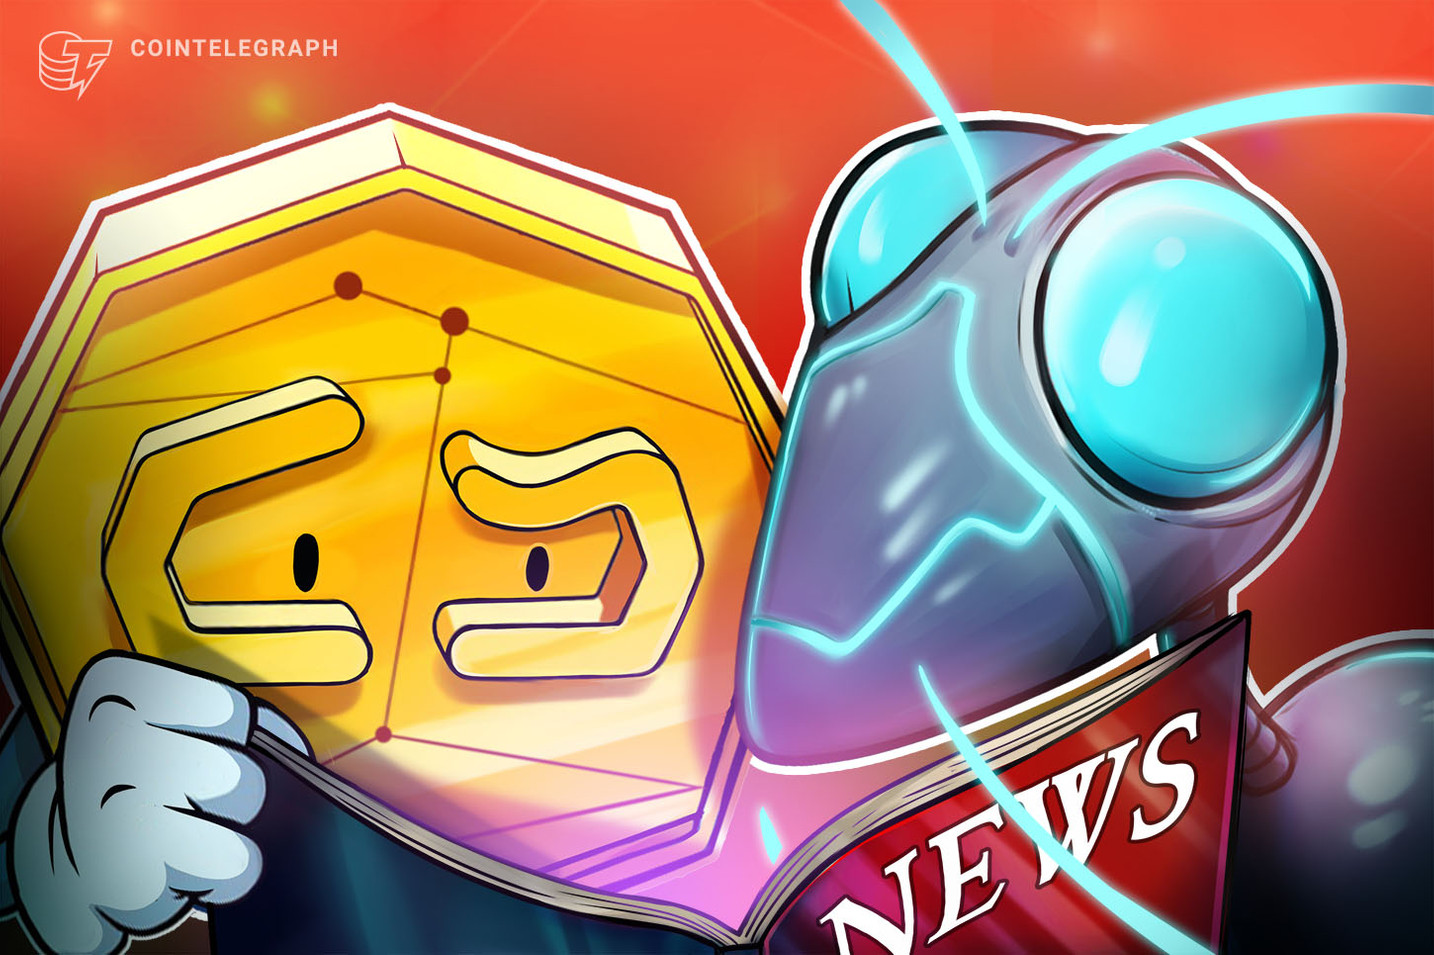 Hodlers thankful as Bitcoin is gainful: Bad Crypto news of the week